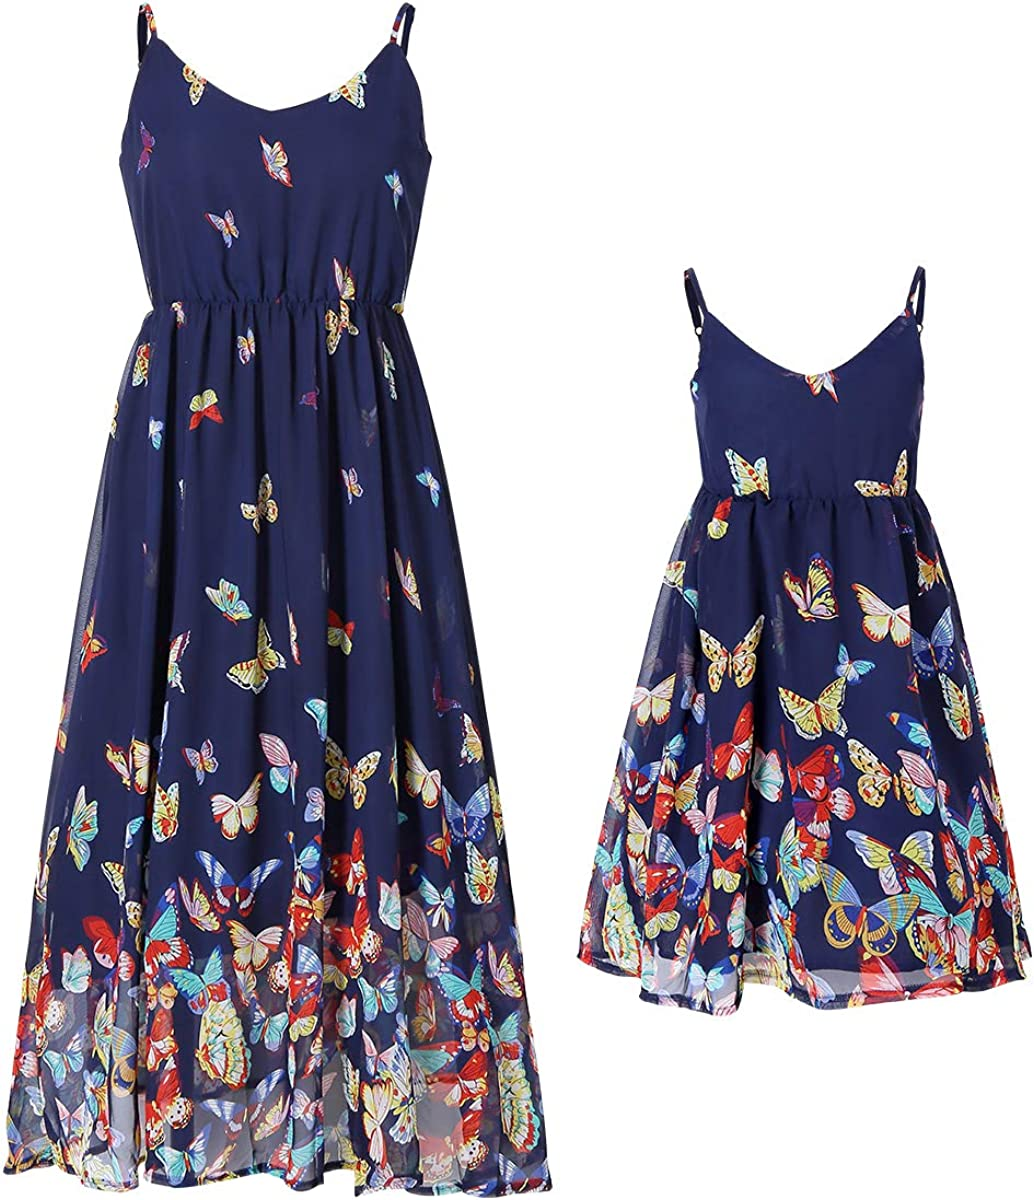 PopReal Mommy and Me Dresses Vintage Butterfly Floral Printed Spaghetti Straps V-Neck Beach Cami Dress